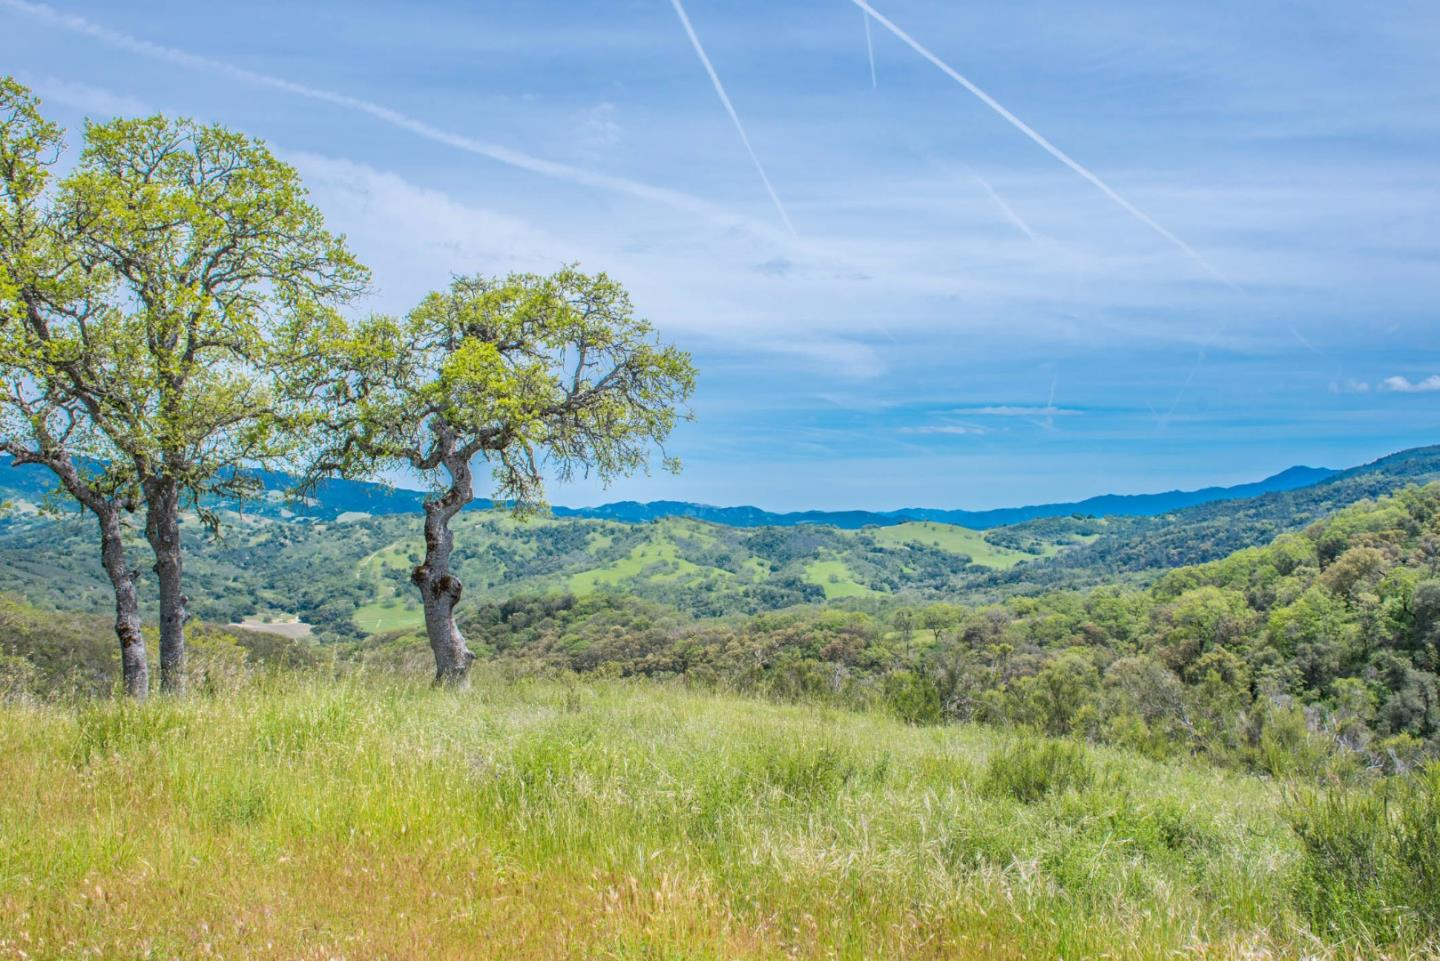 Additional photo for property listing at 23850 Lambert Flat Road  Carmel Valley, California 93924 United States